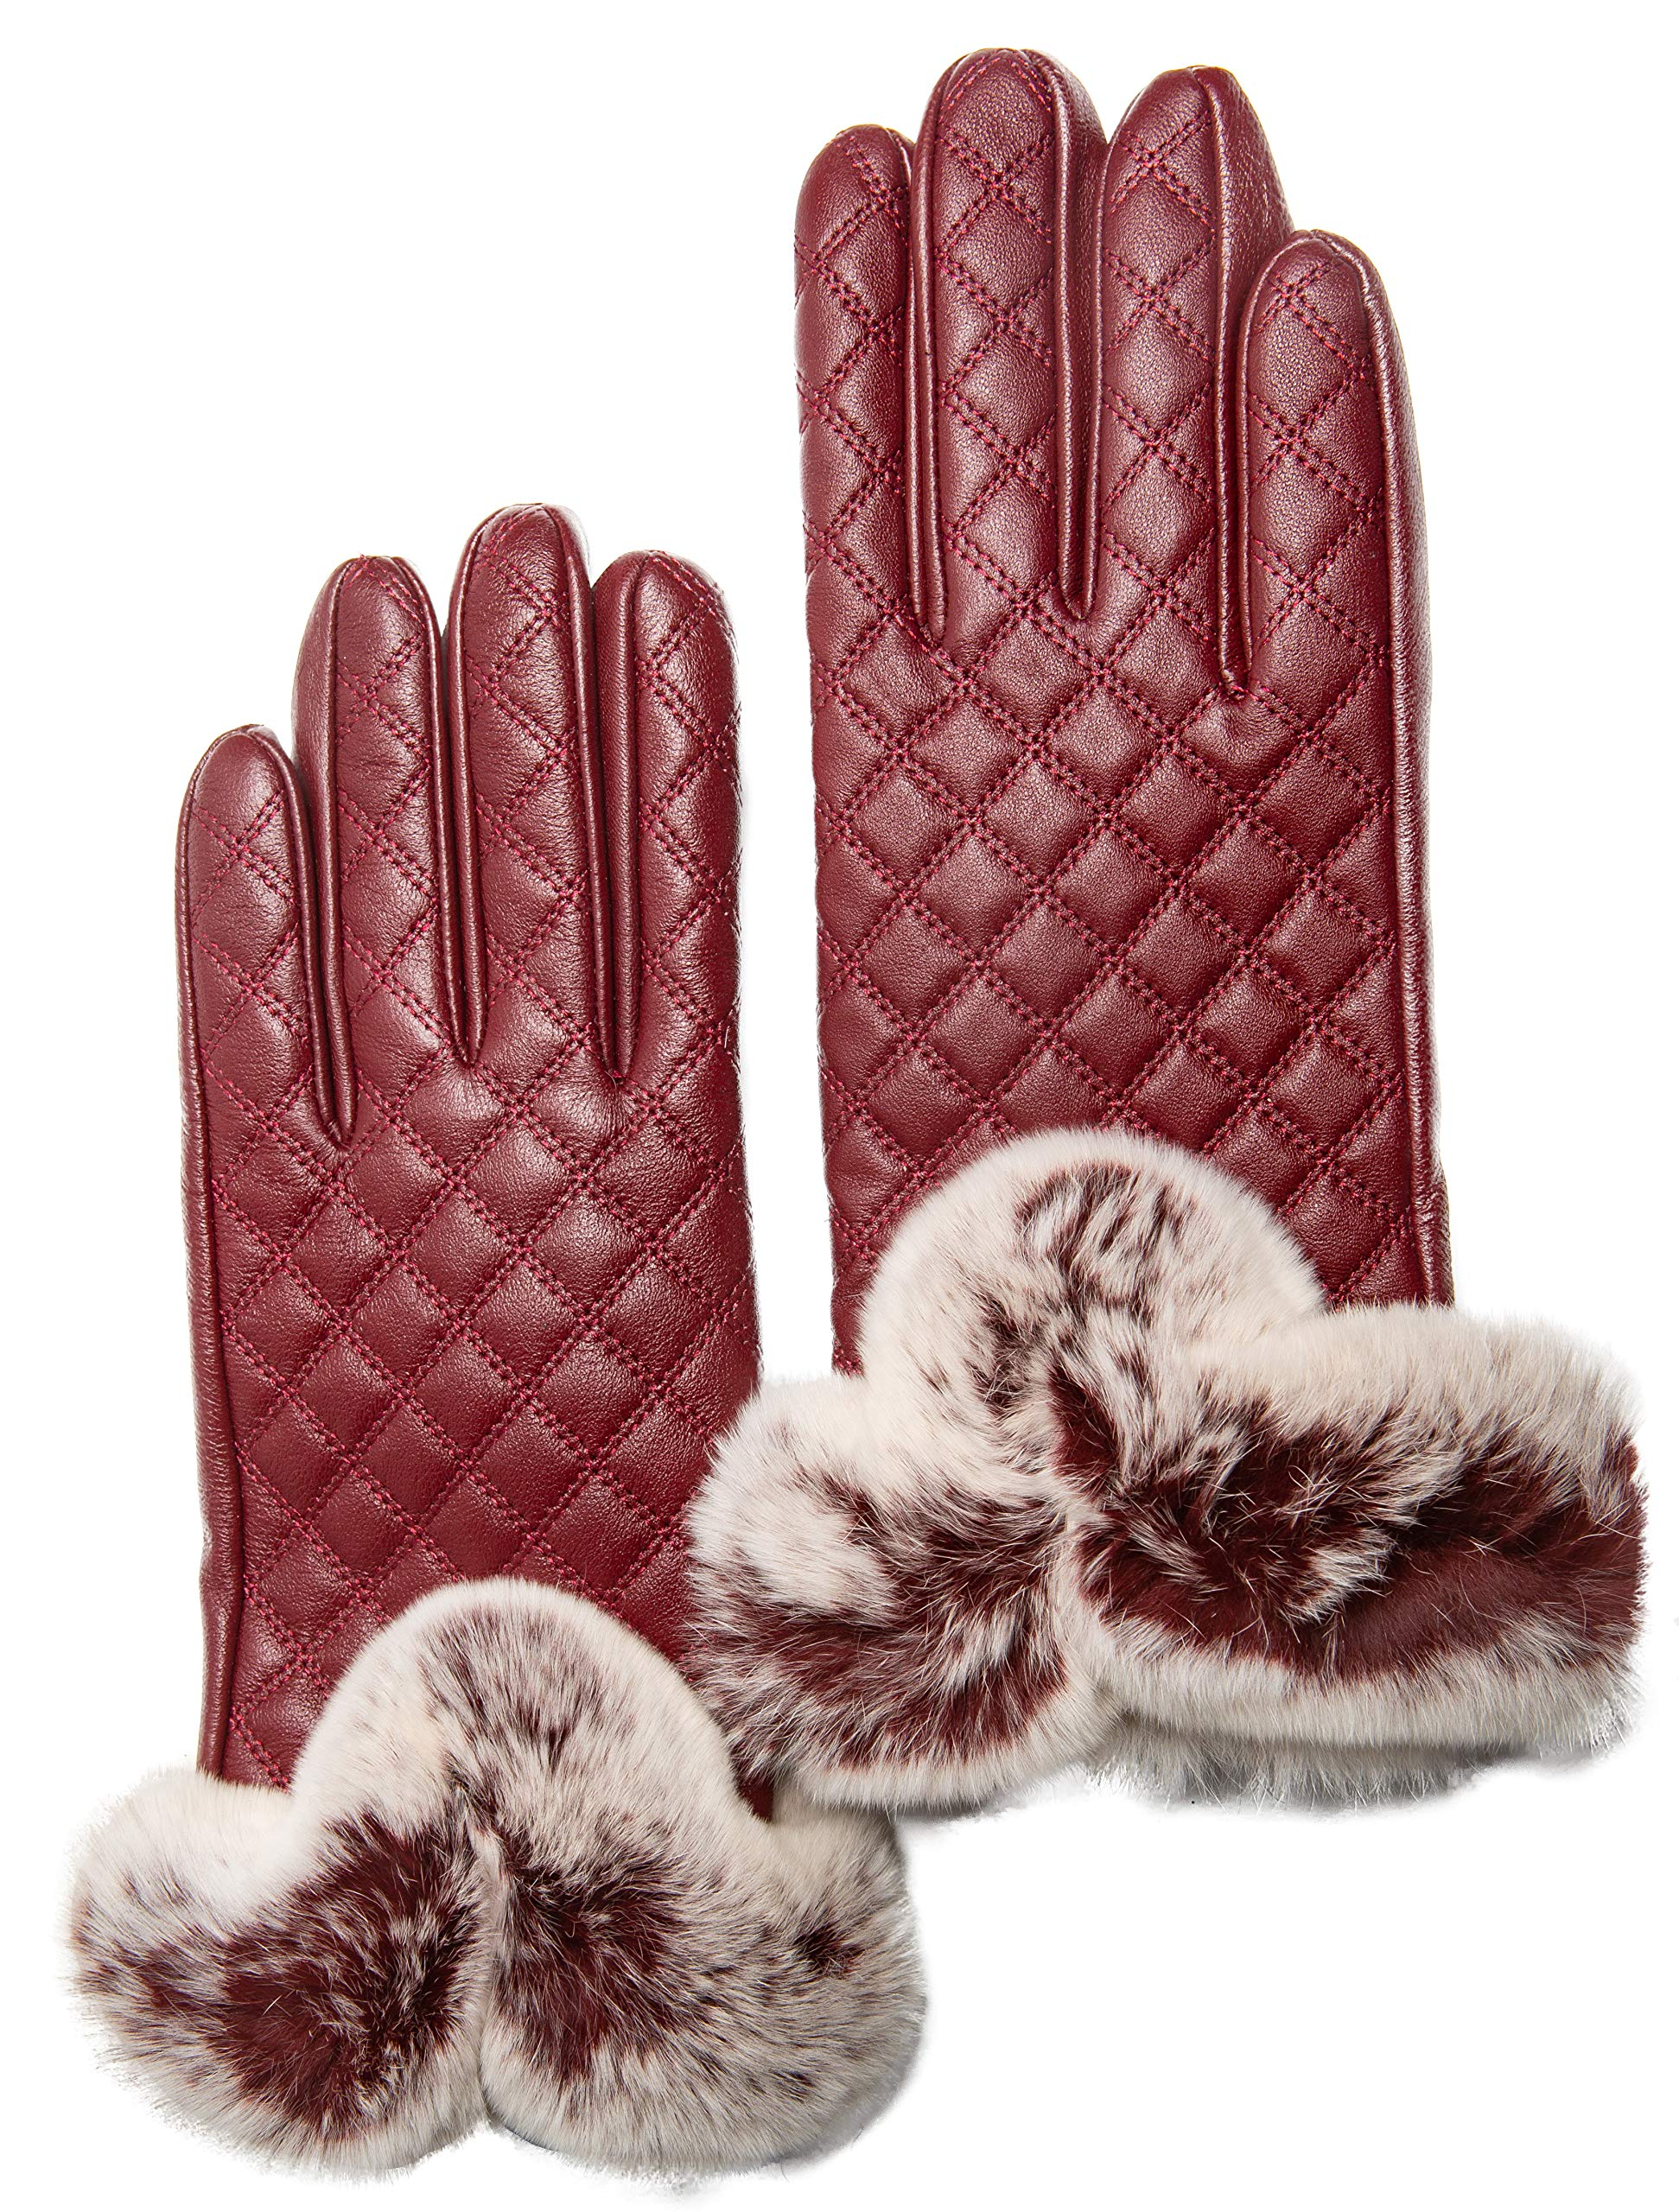 Women's Touchscreen Cashmere Lined Leather Gloves, Gift Box by CANDOR AND CLASS (Wine S)